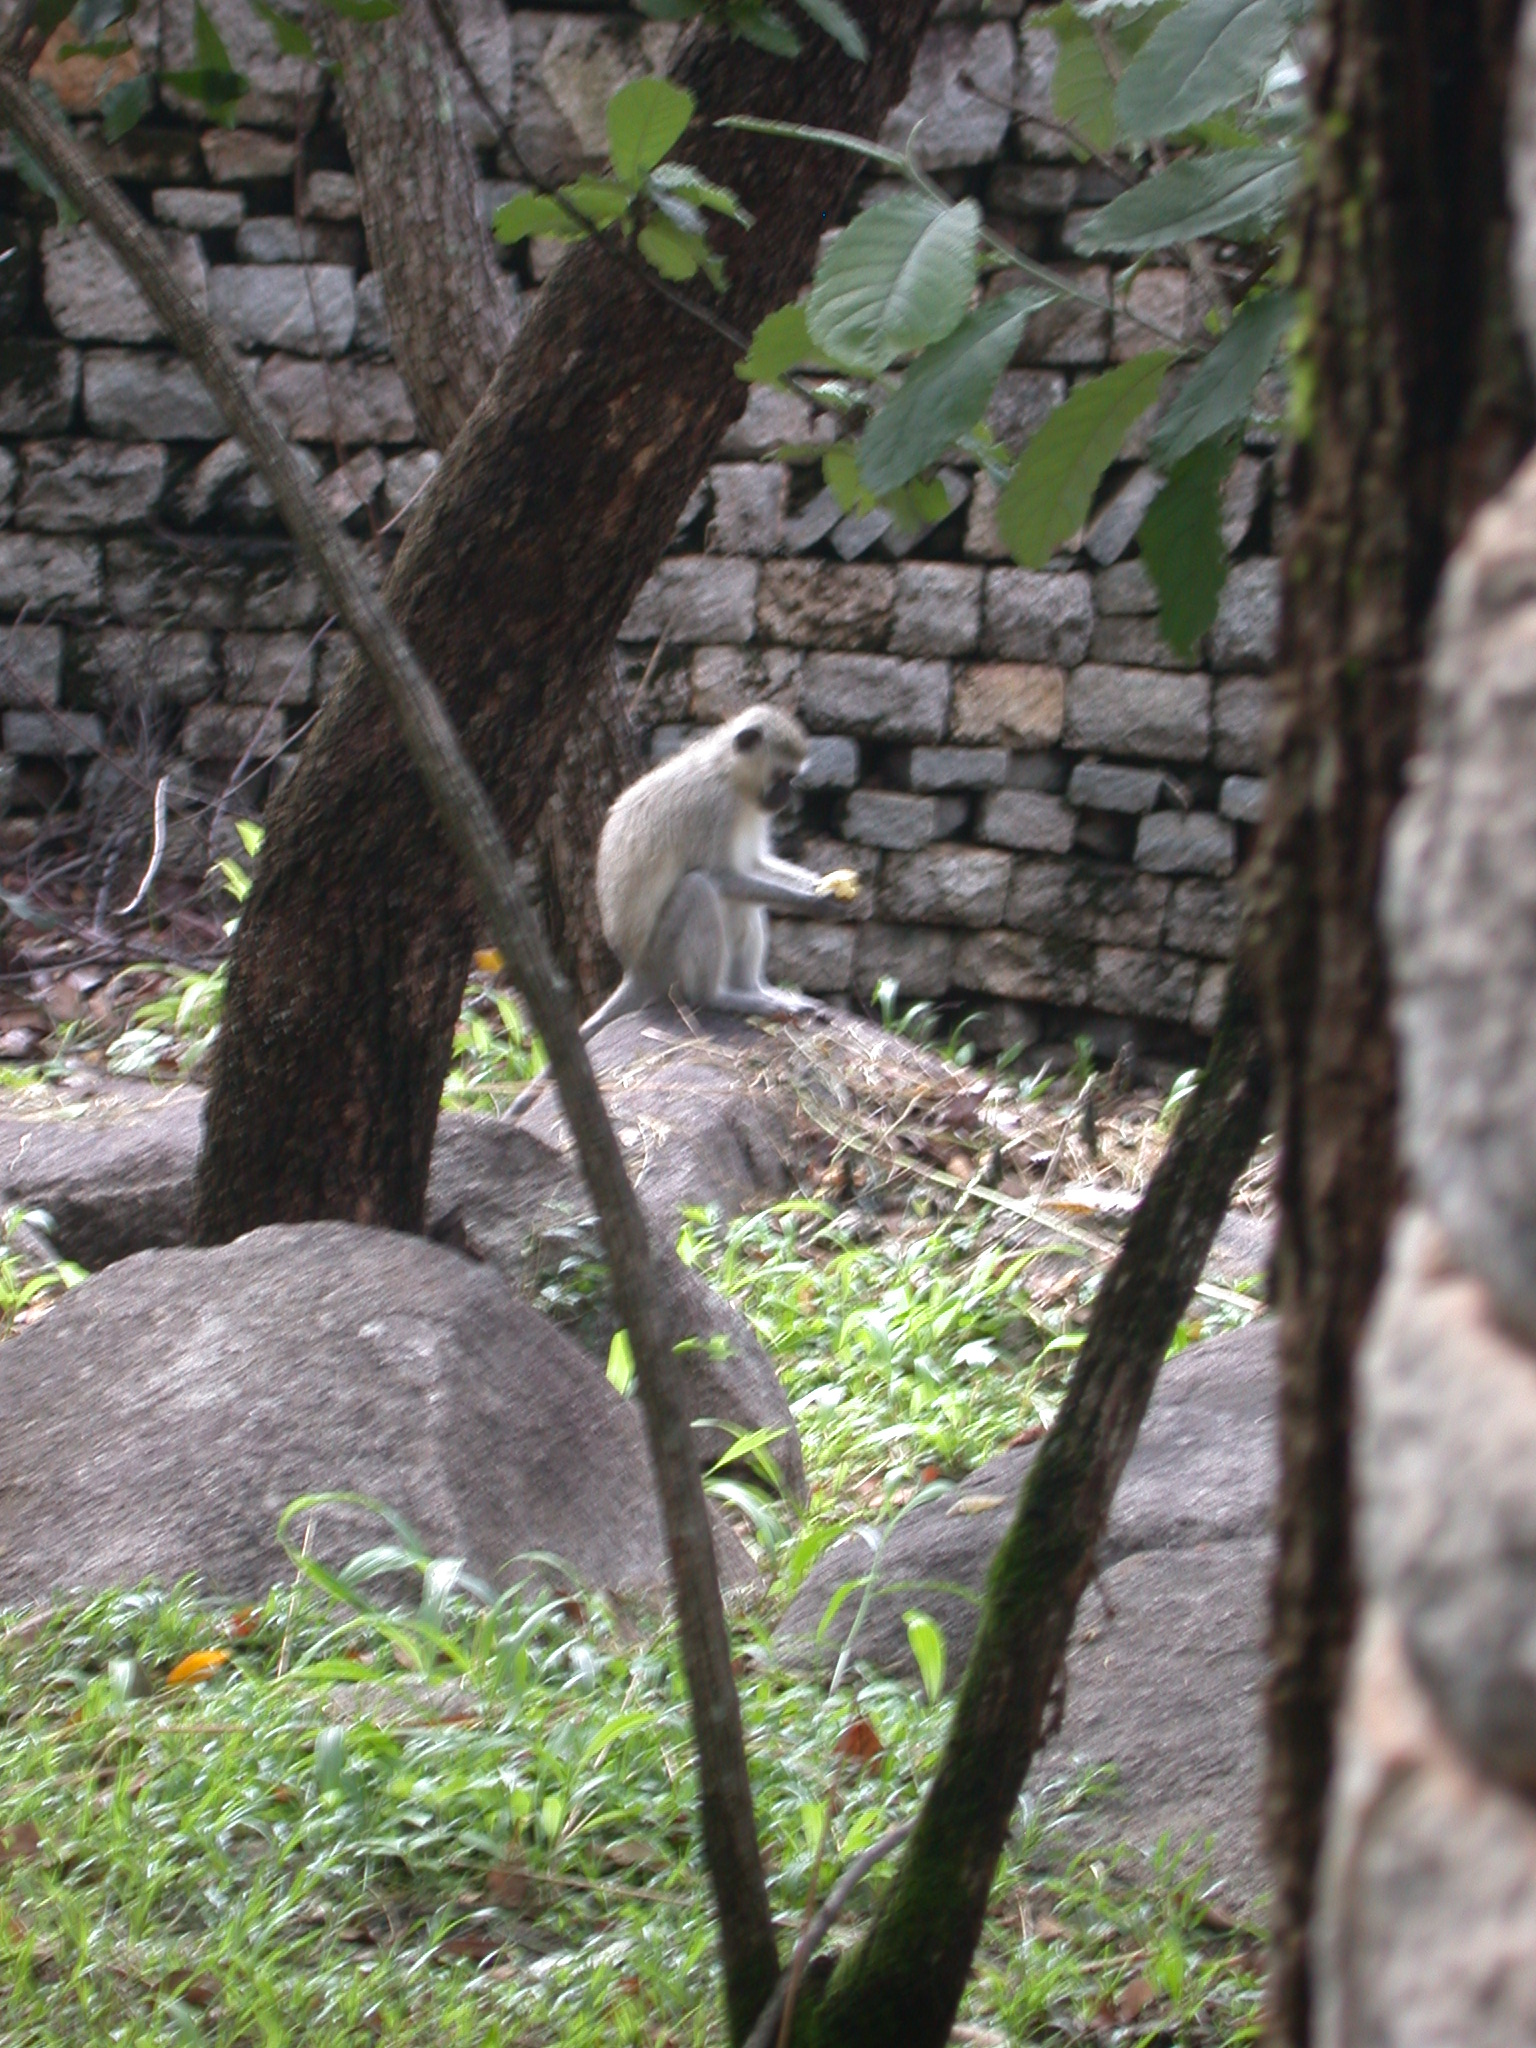 Monkey Opening Fruit in Garden Outside My Suite at the Ancient City Lodge, Great Zimbabwe, Outside Masvingo, Zimbabwe